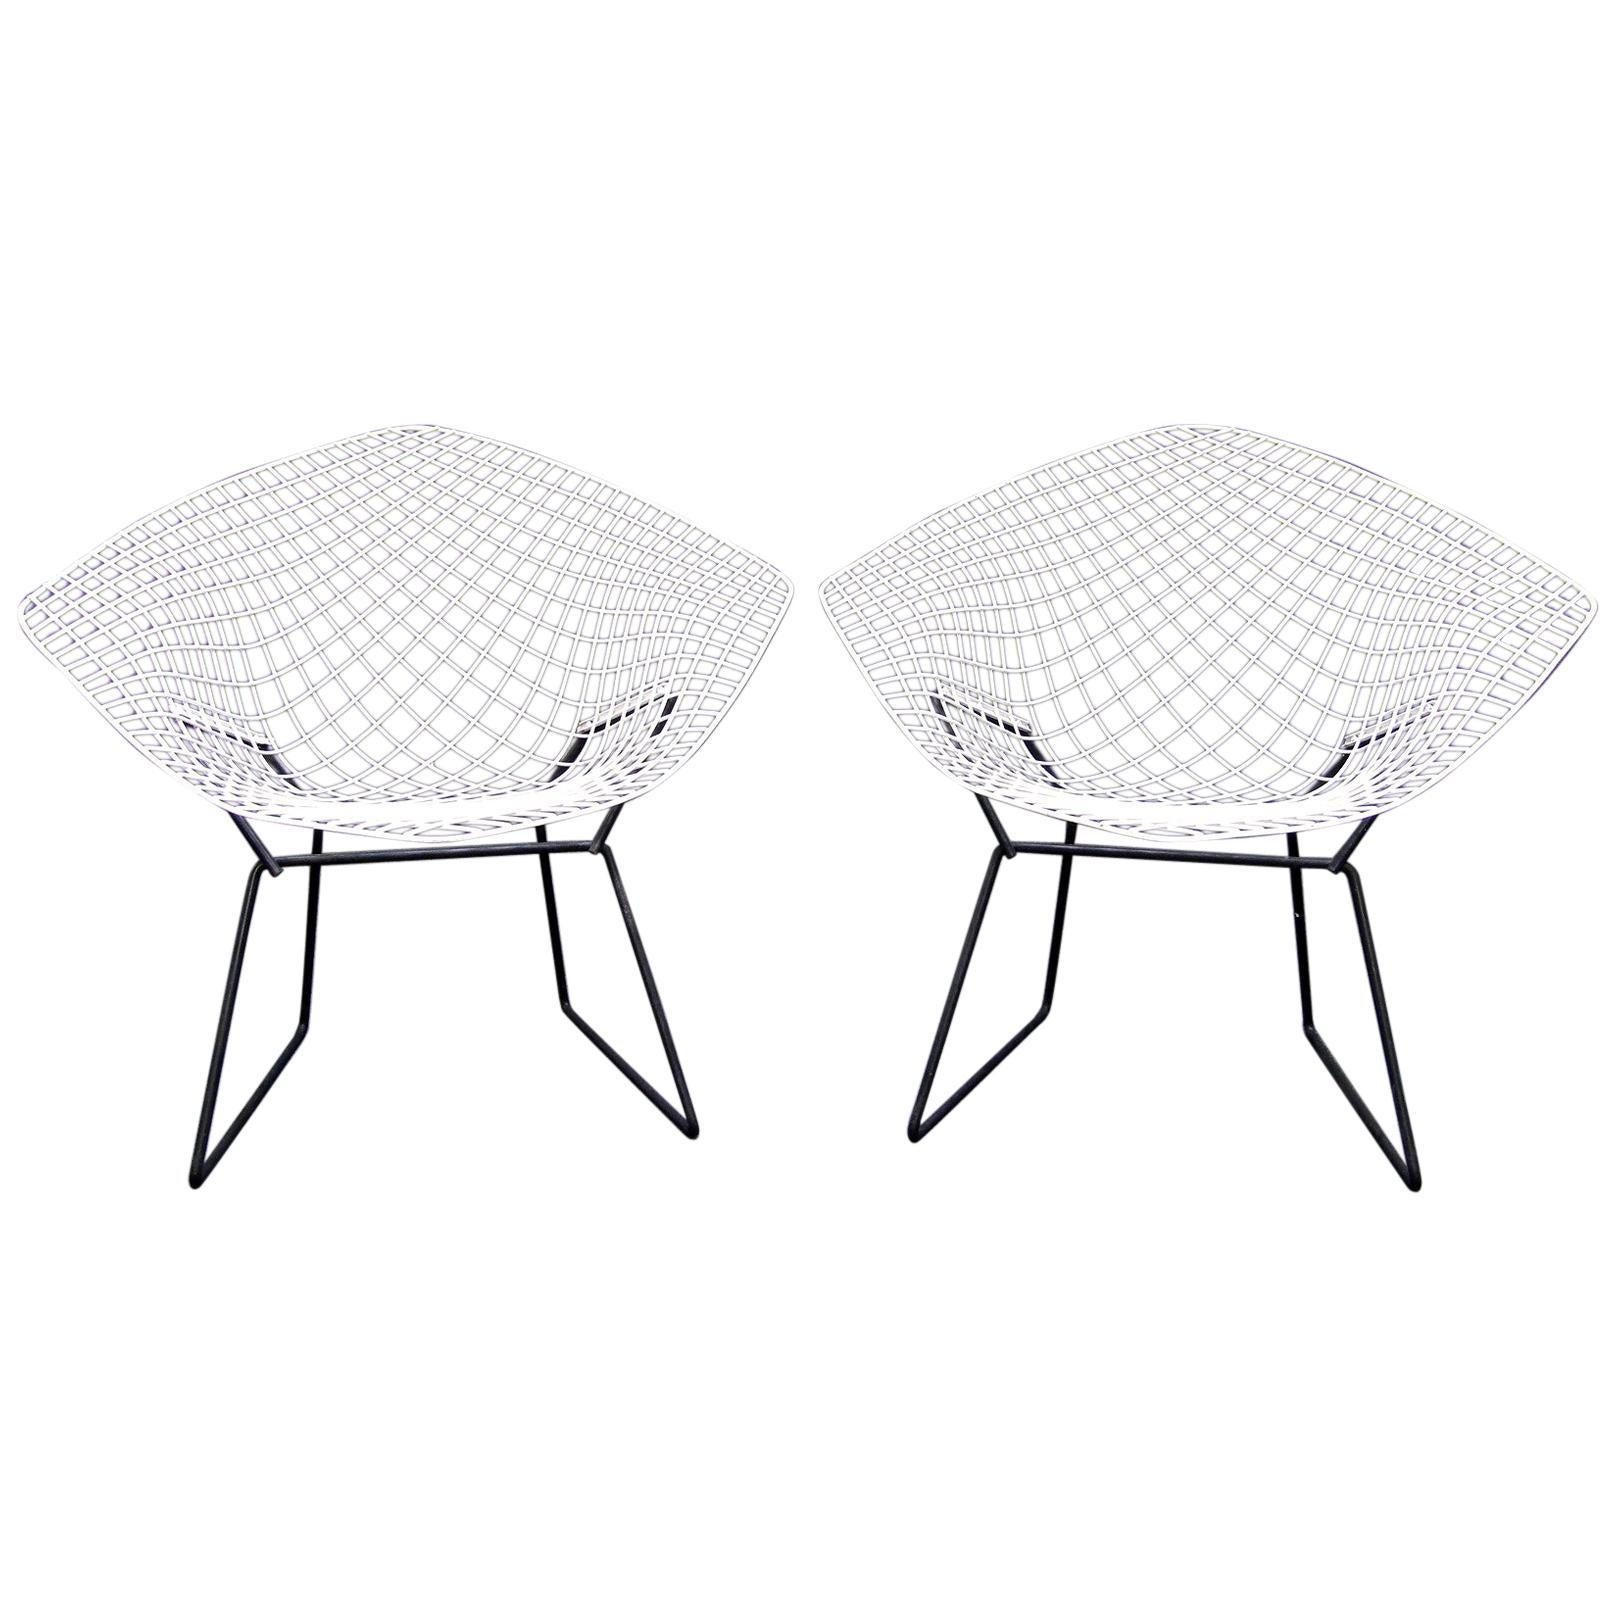 """Two Vintage 1960s """"421"""" Diamond Chairs by Harry Bertoia for Knoll"""